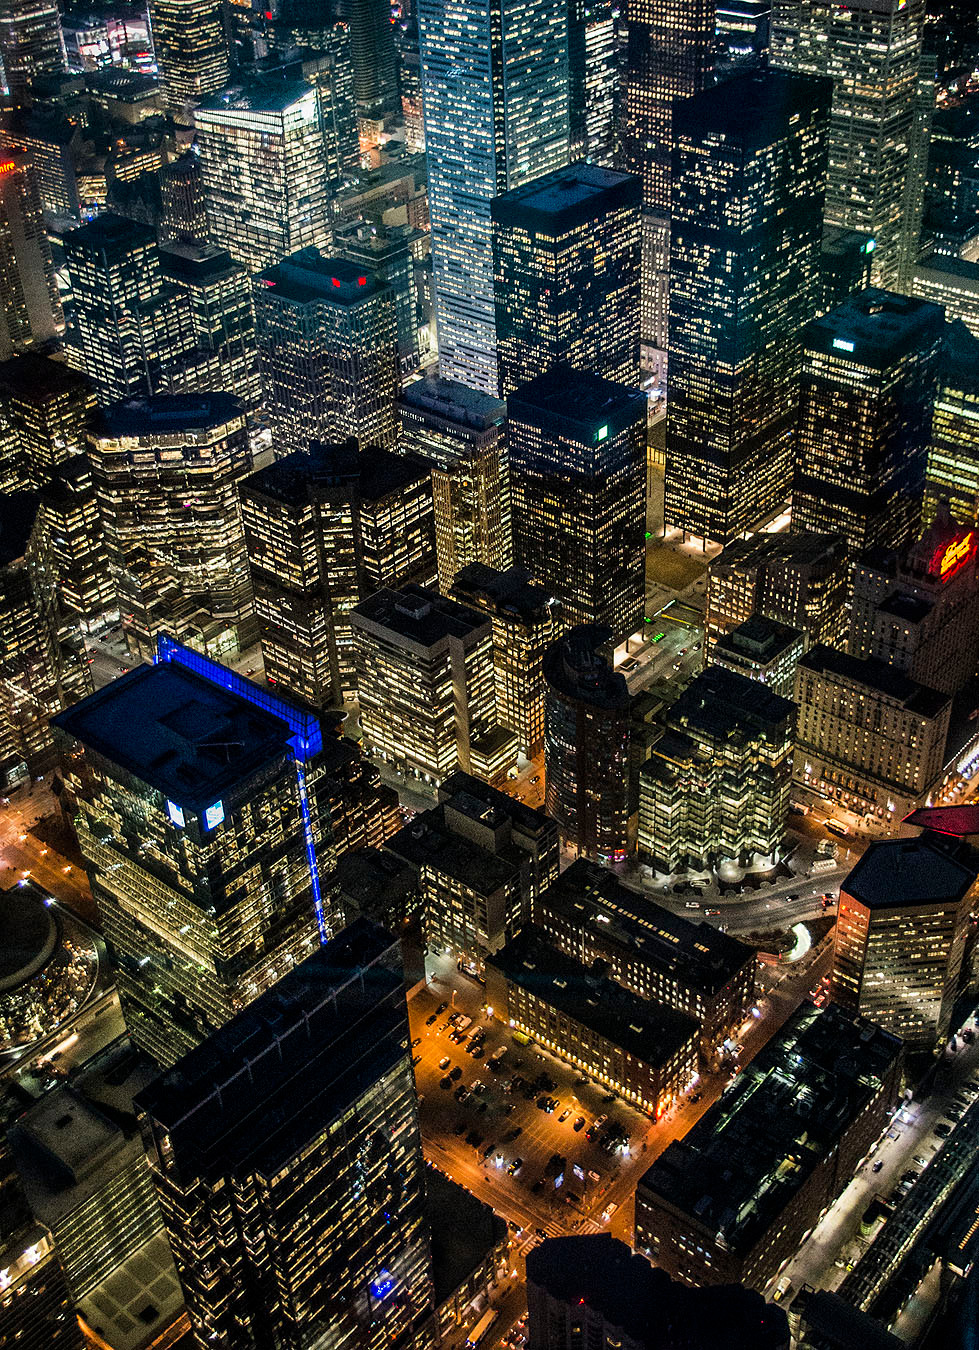 Night view of Toronto from the CN Tower